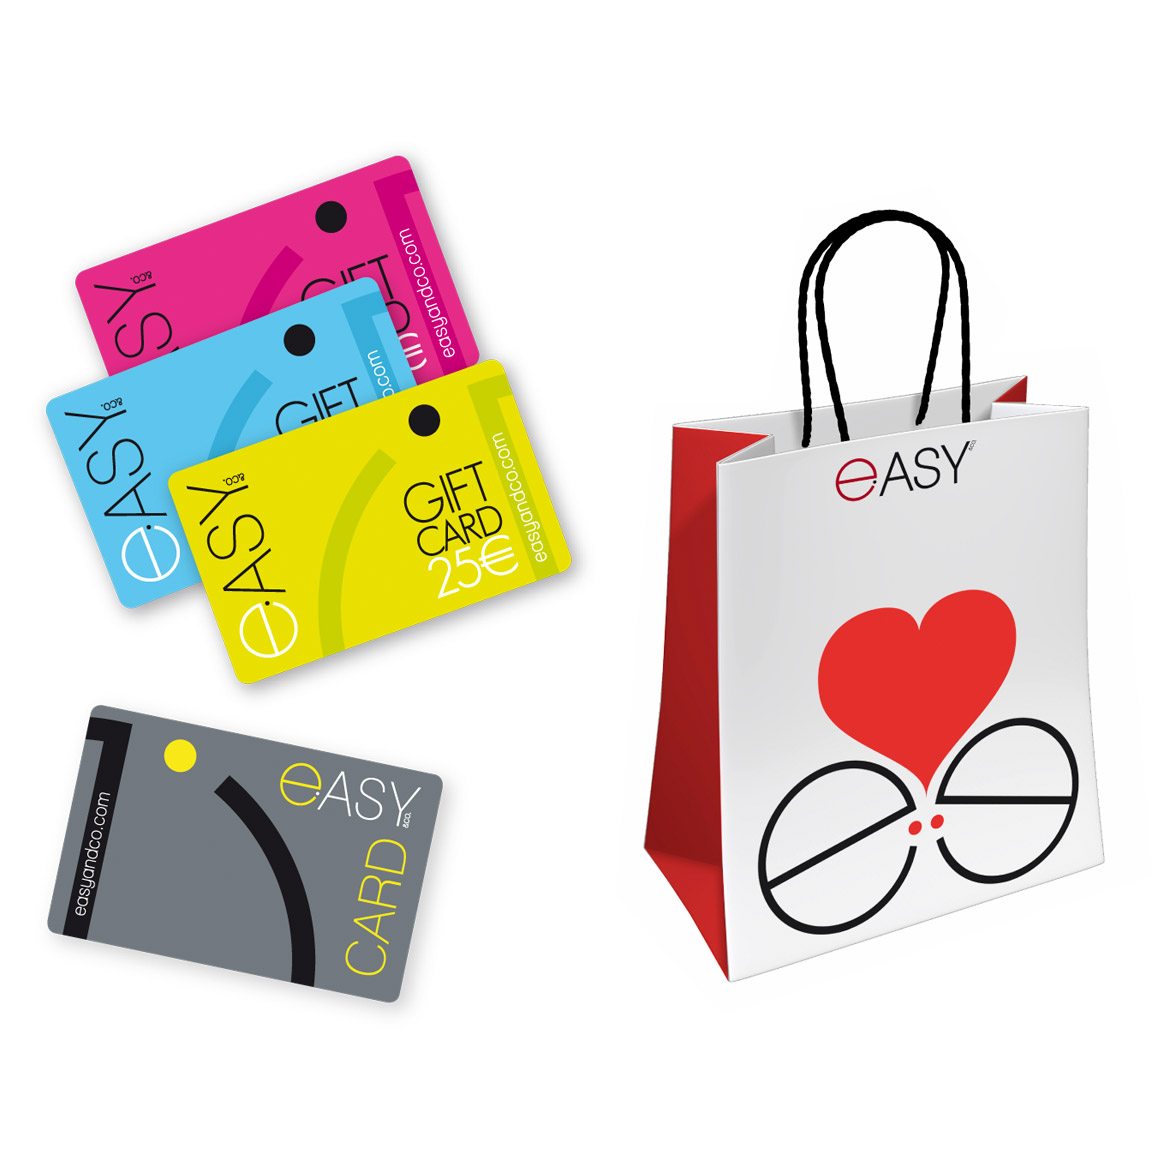 Easy&Co. – Card shopper